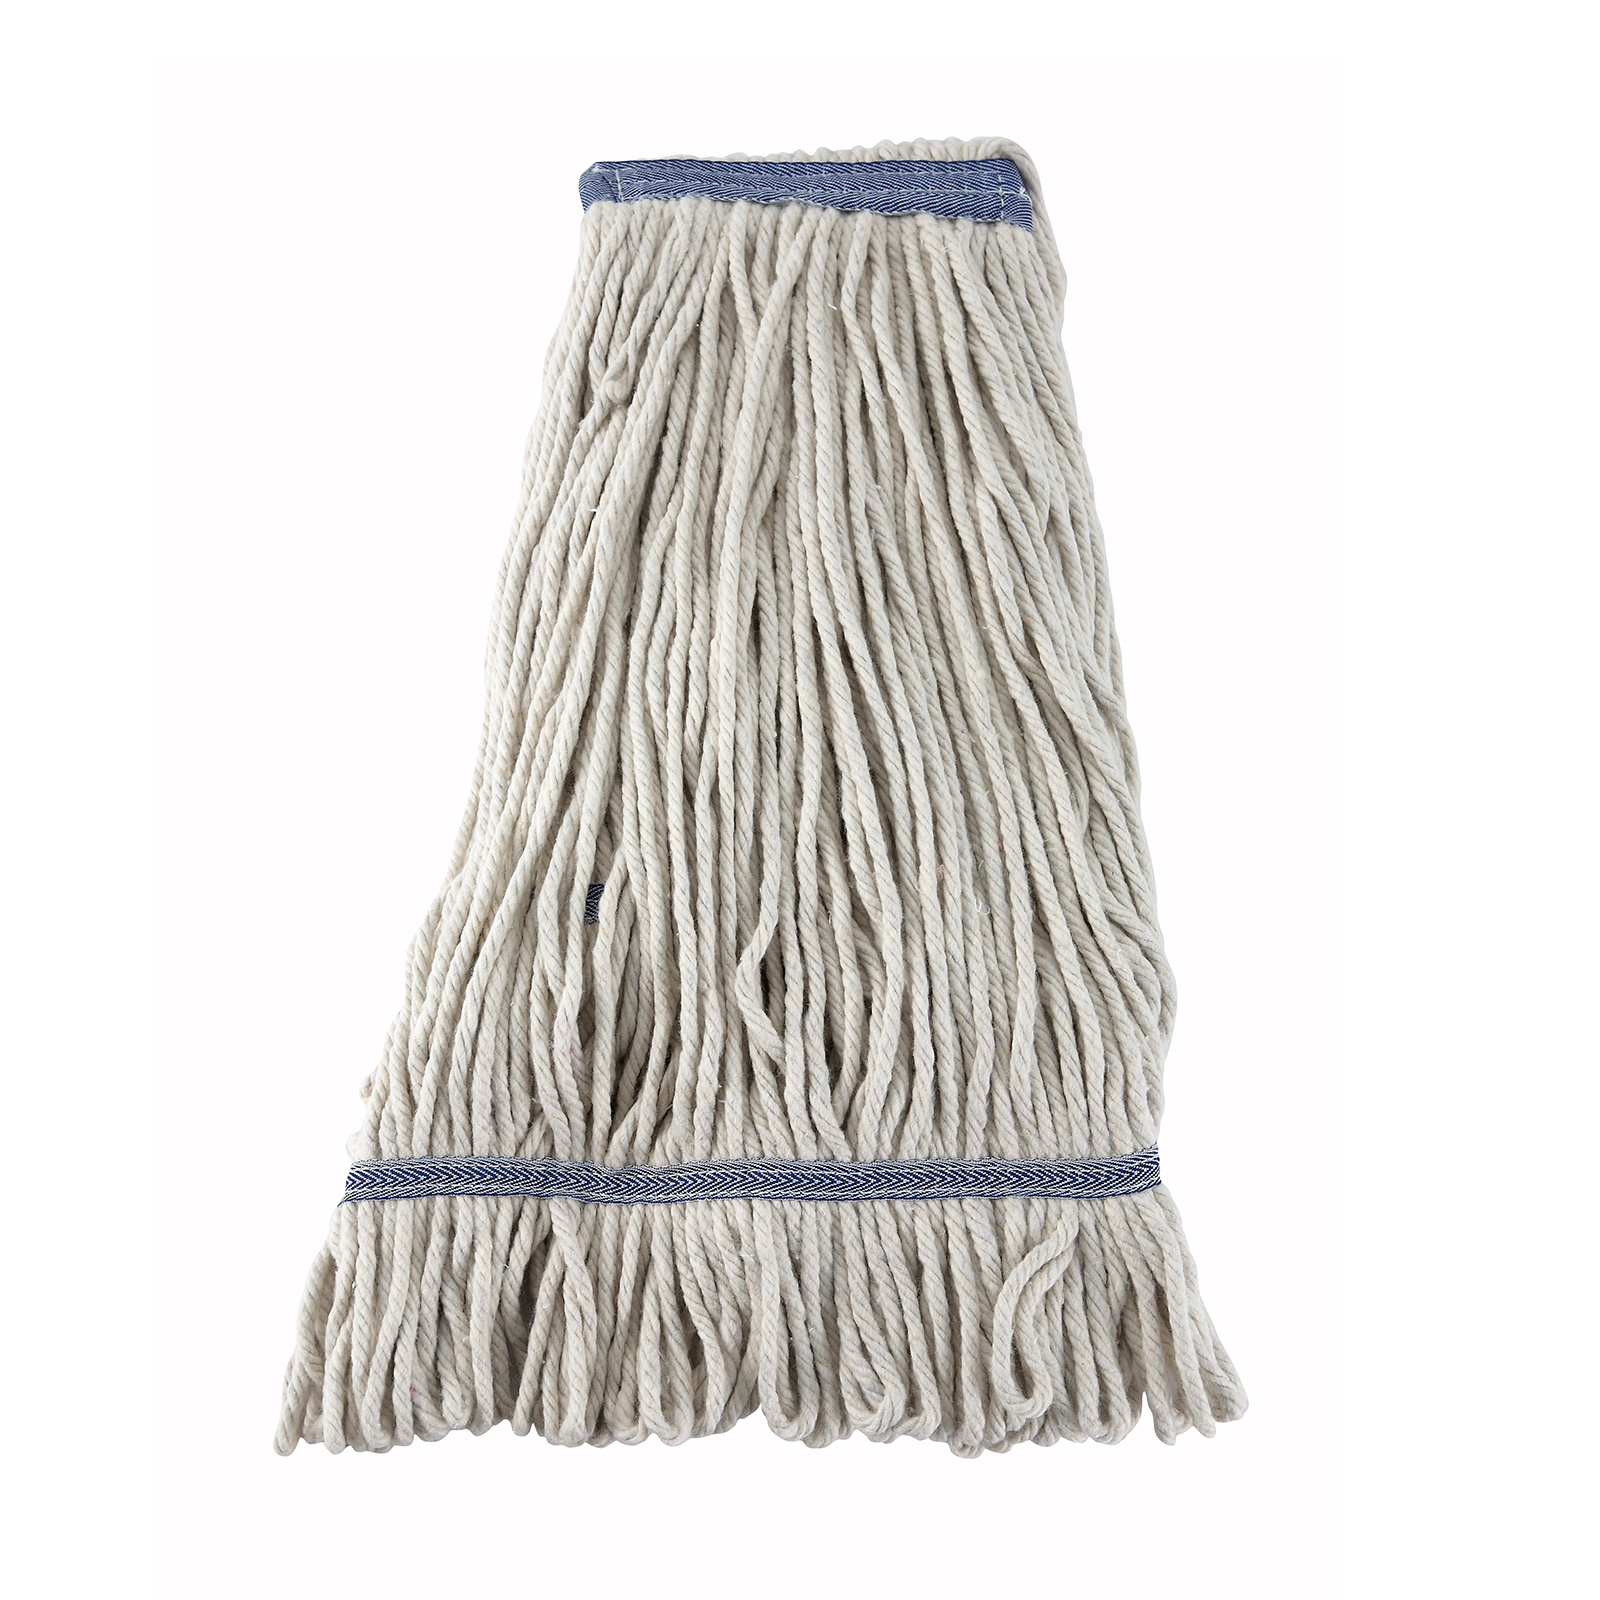 Winco MOP-24W wet mop head